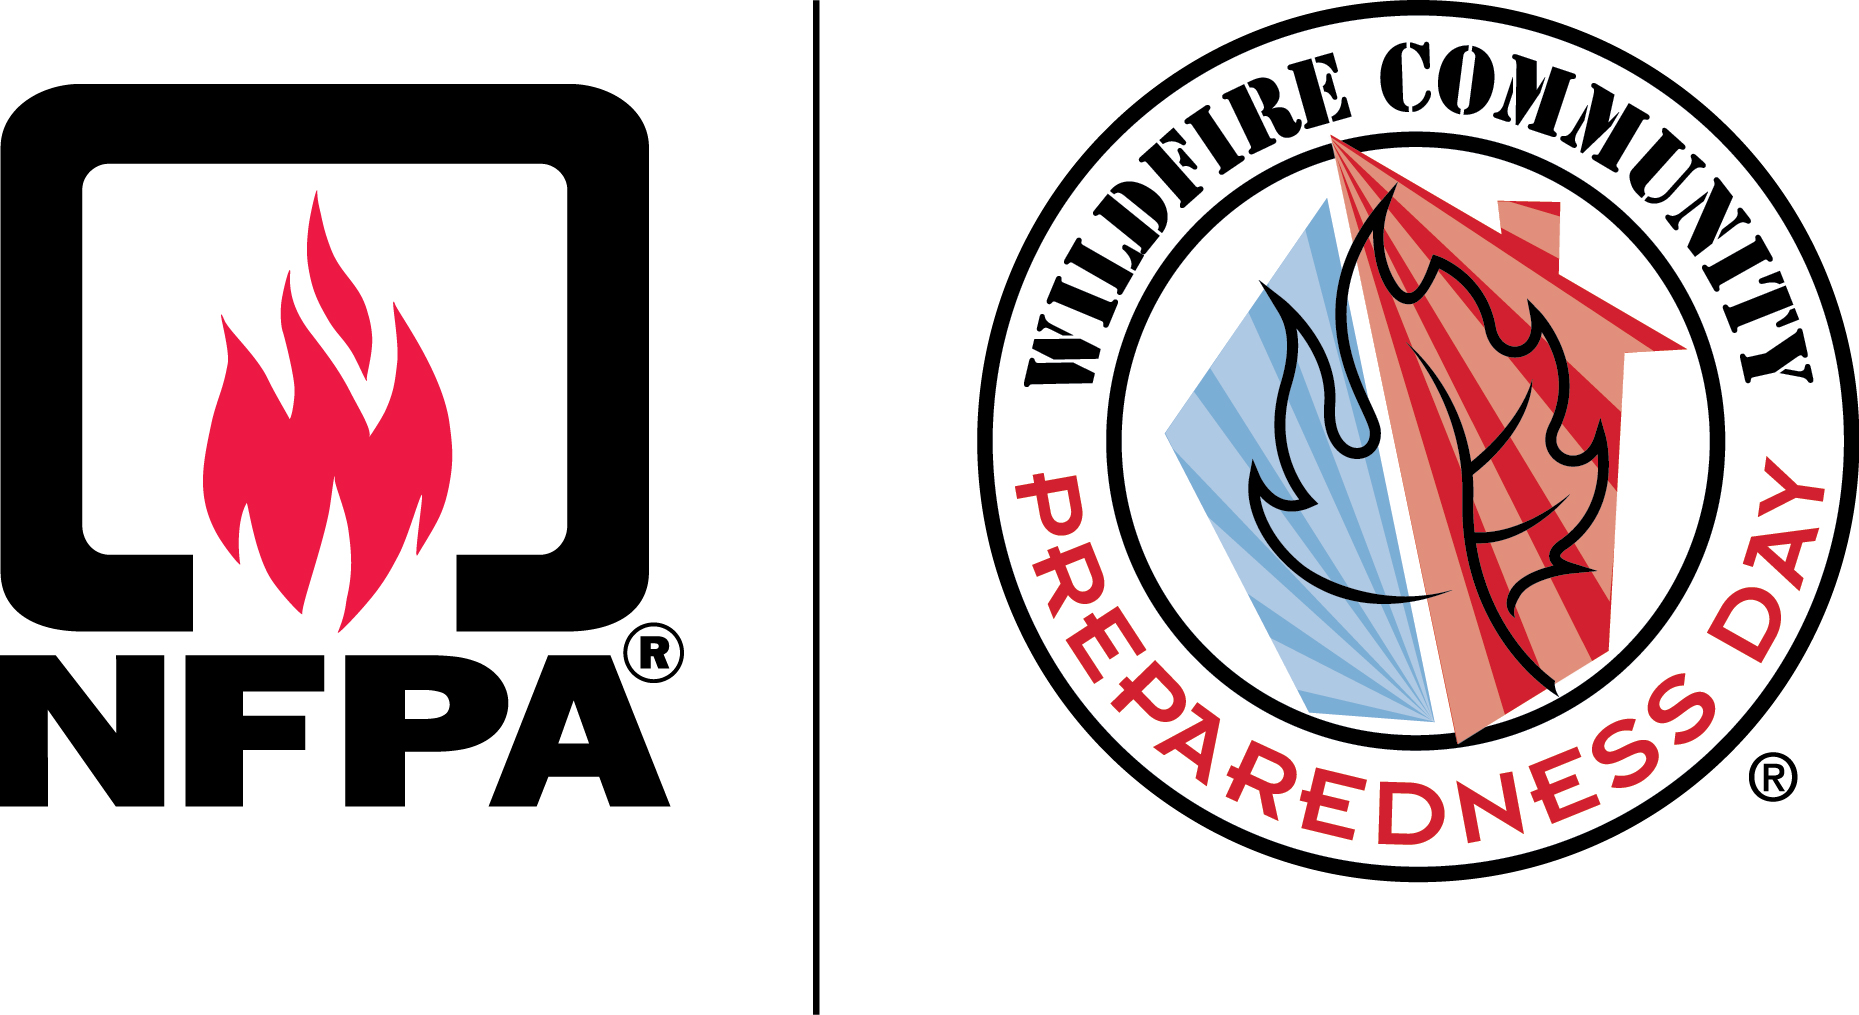 Wildfire Community Preparedness Day logo